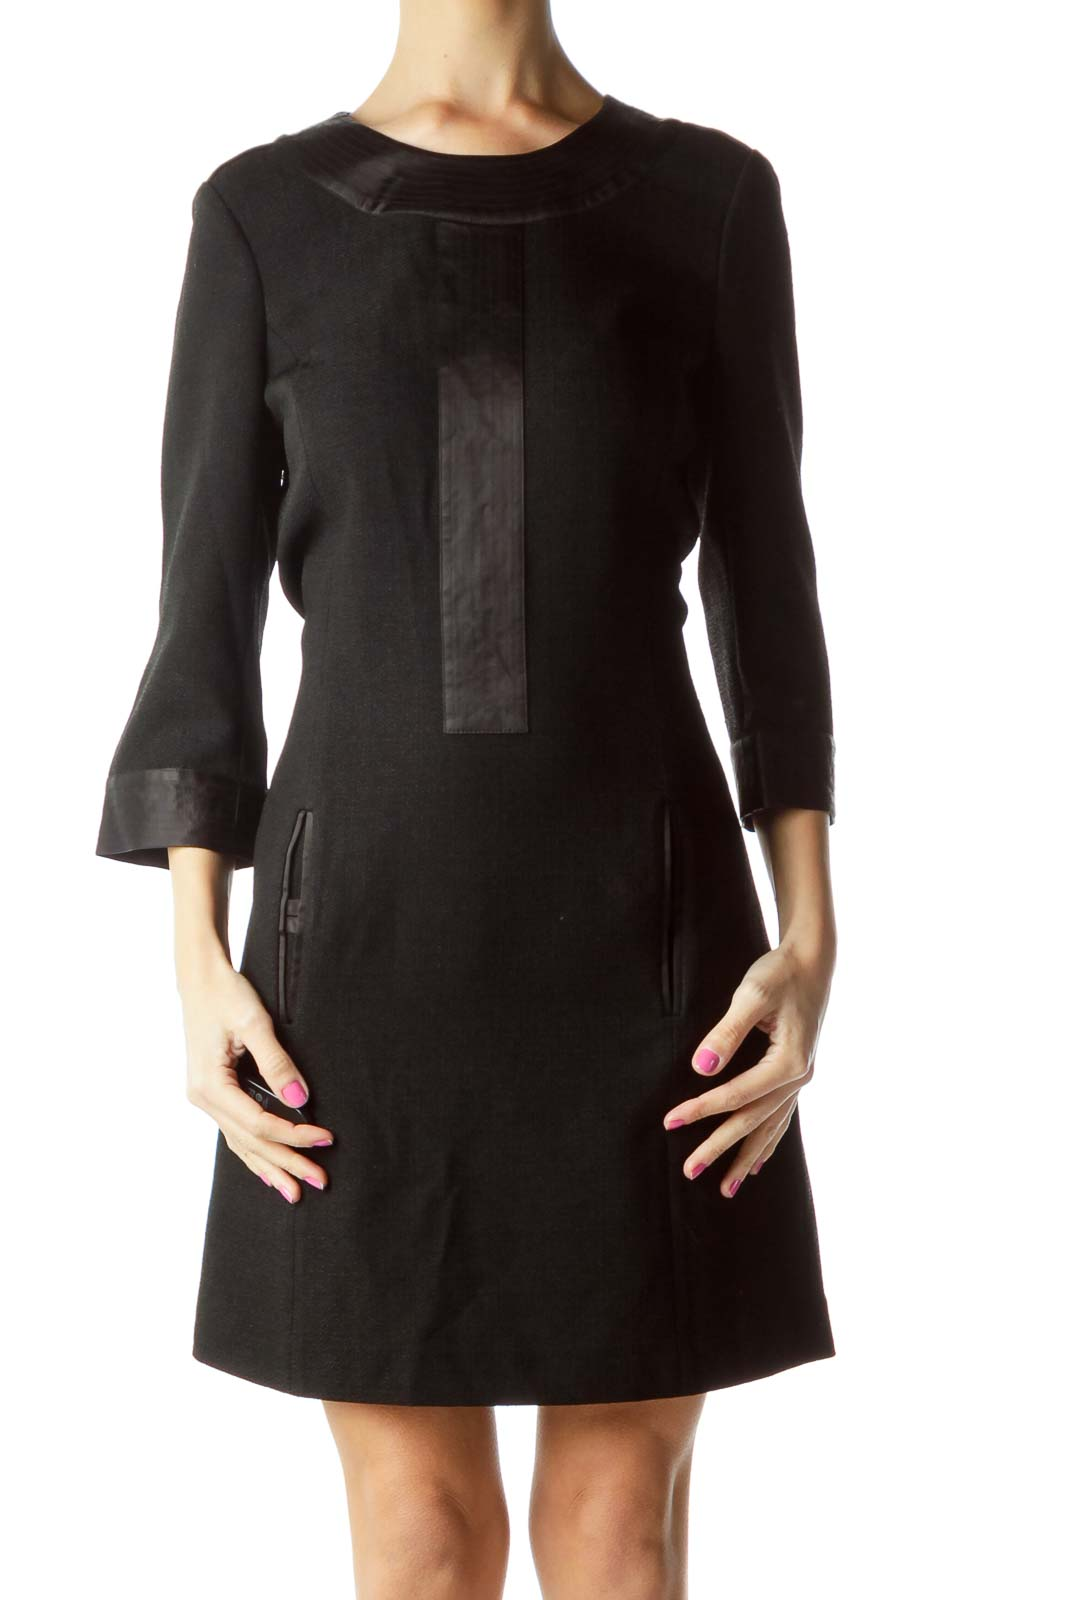 Black 3/4 Sleeve Shift Work Dress